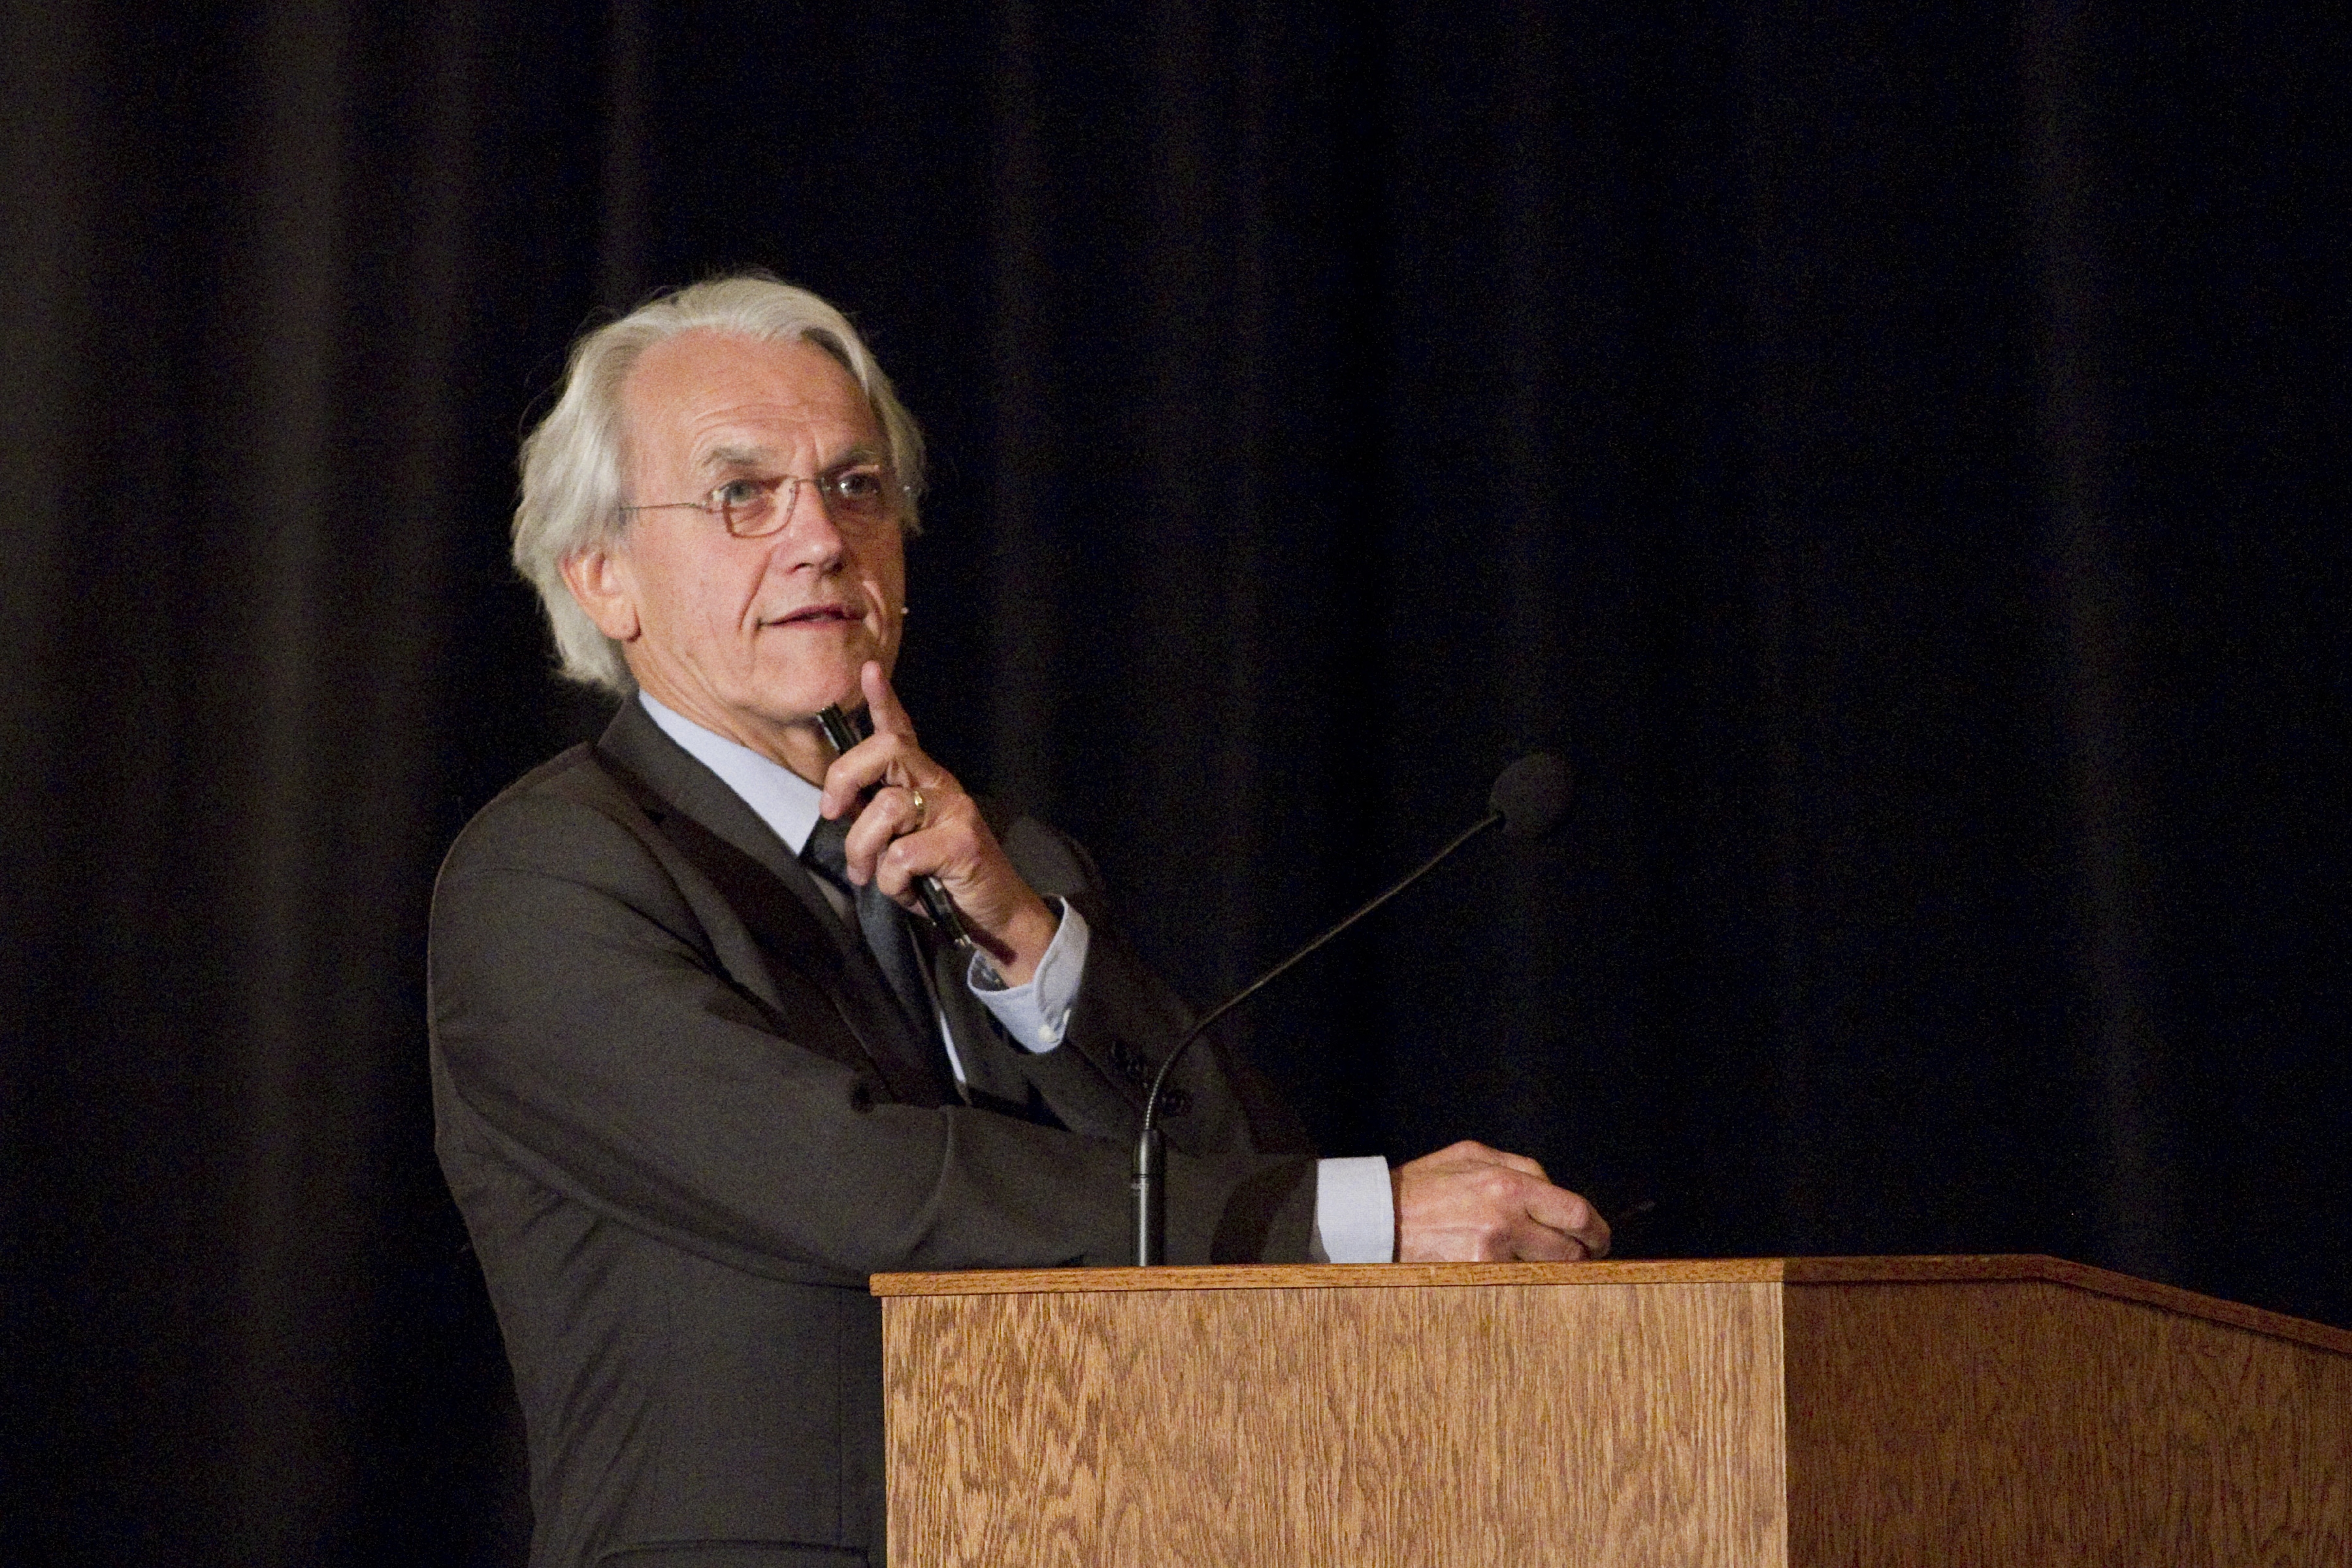 Former Michigan Engineering faculty member Dr. Gérard Mourou at Physics Symposium celebrating the 50th birthday of nonlinear optics on October 26th 2011. Image credit: Michigan Photography